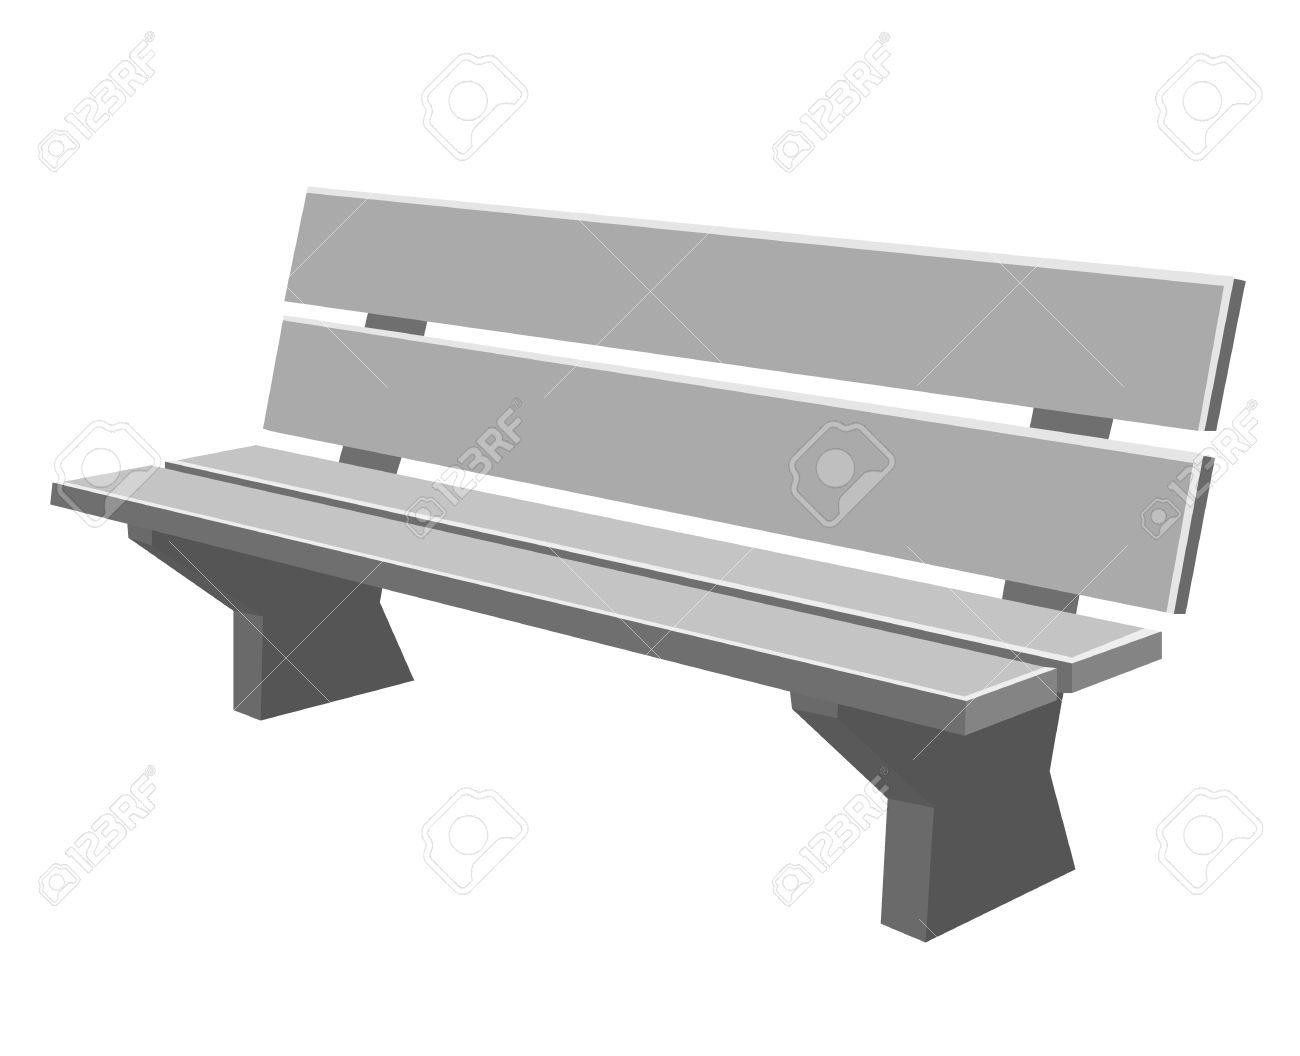 Park bence black and. Bench clipart modern